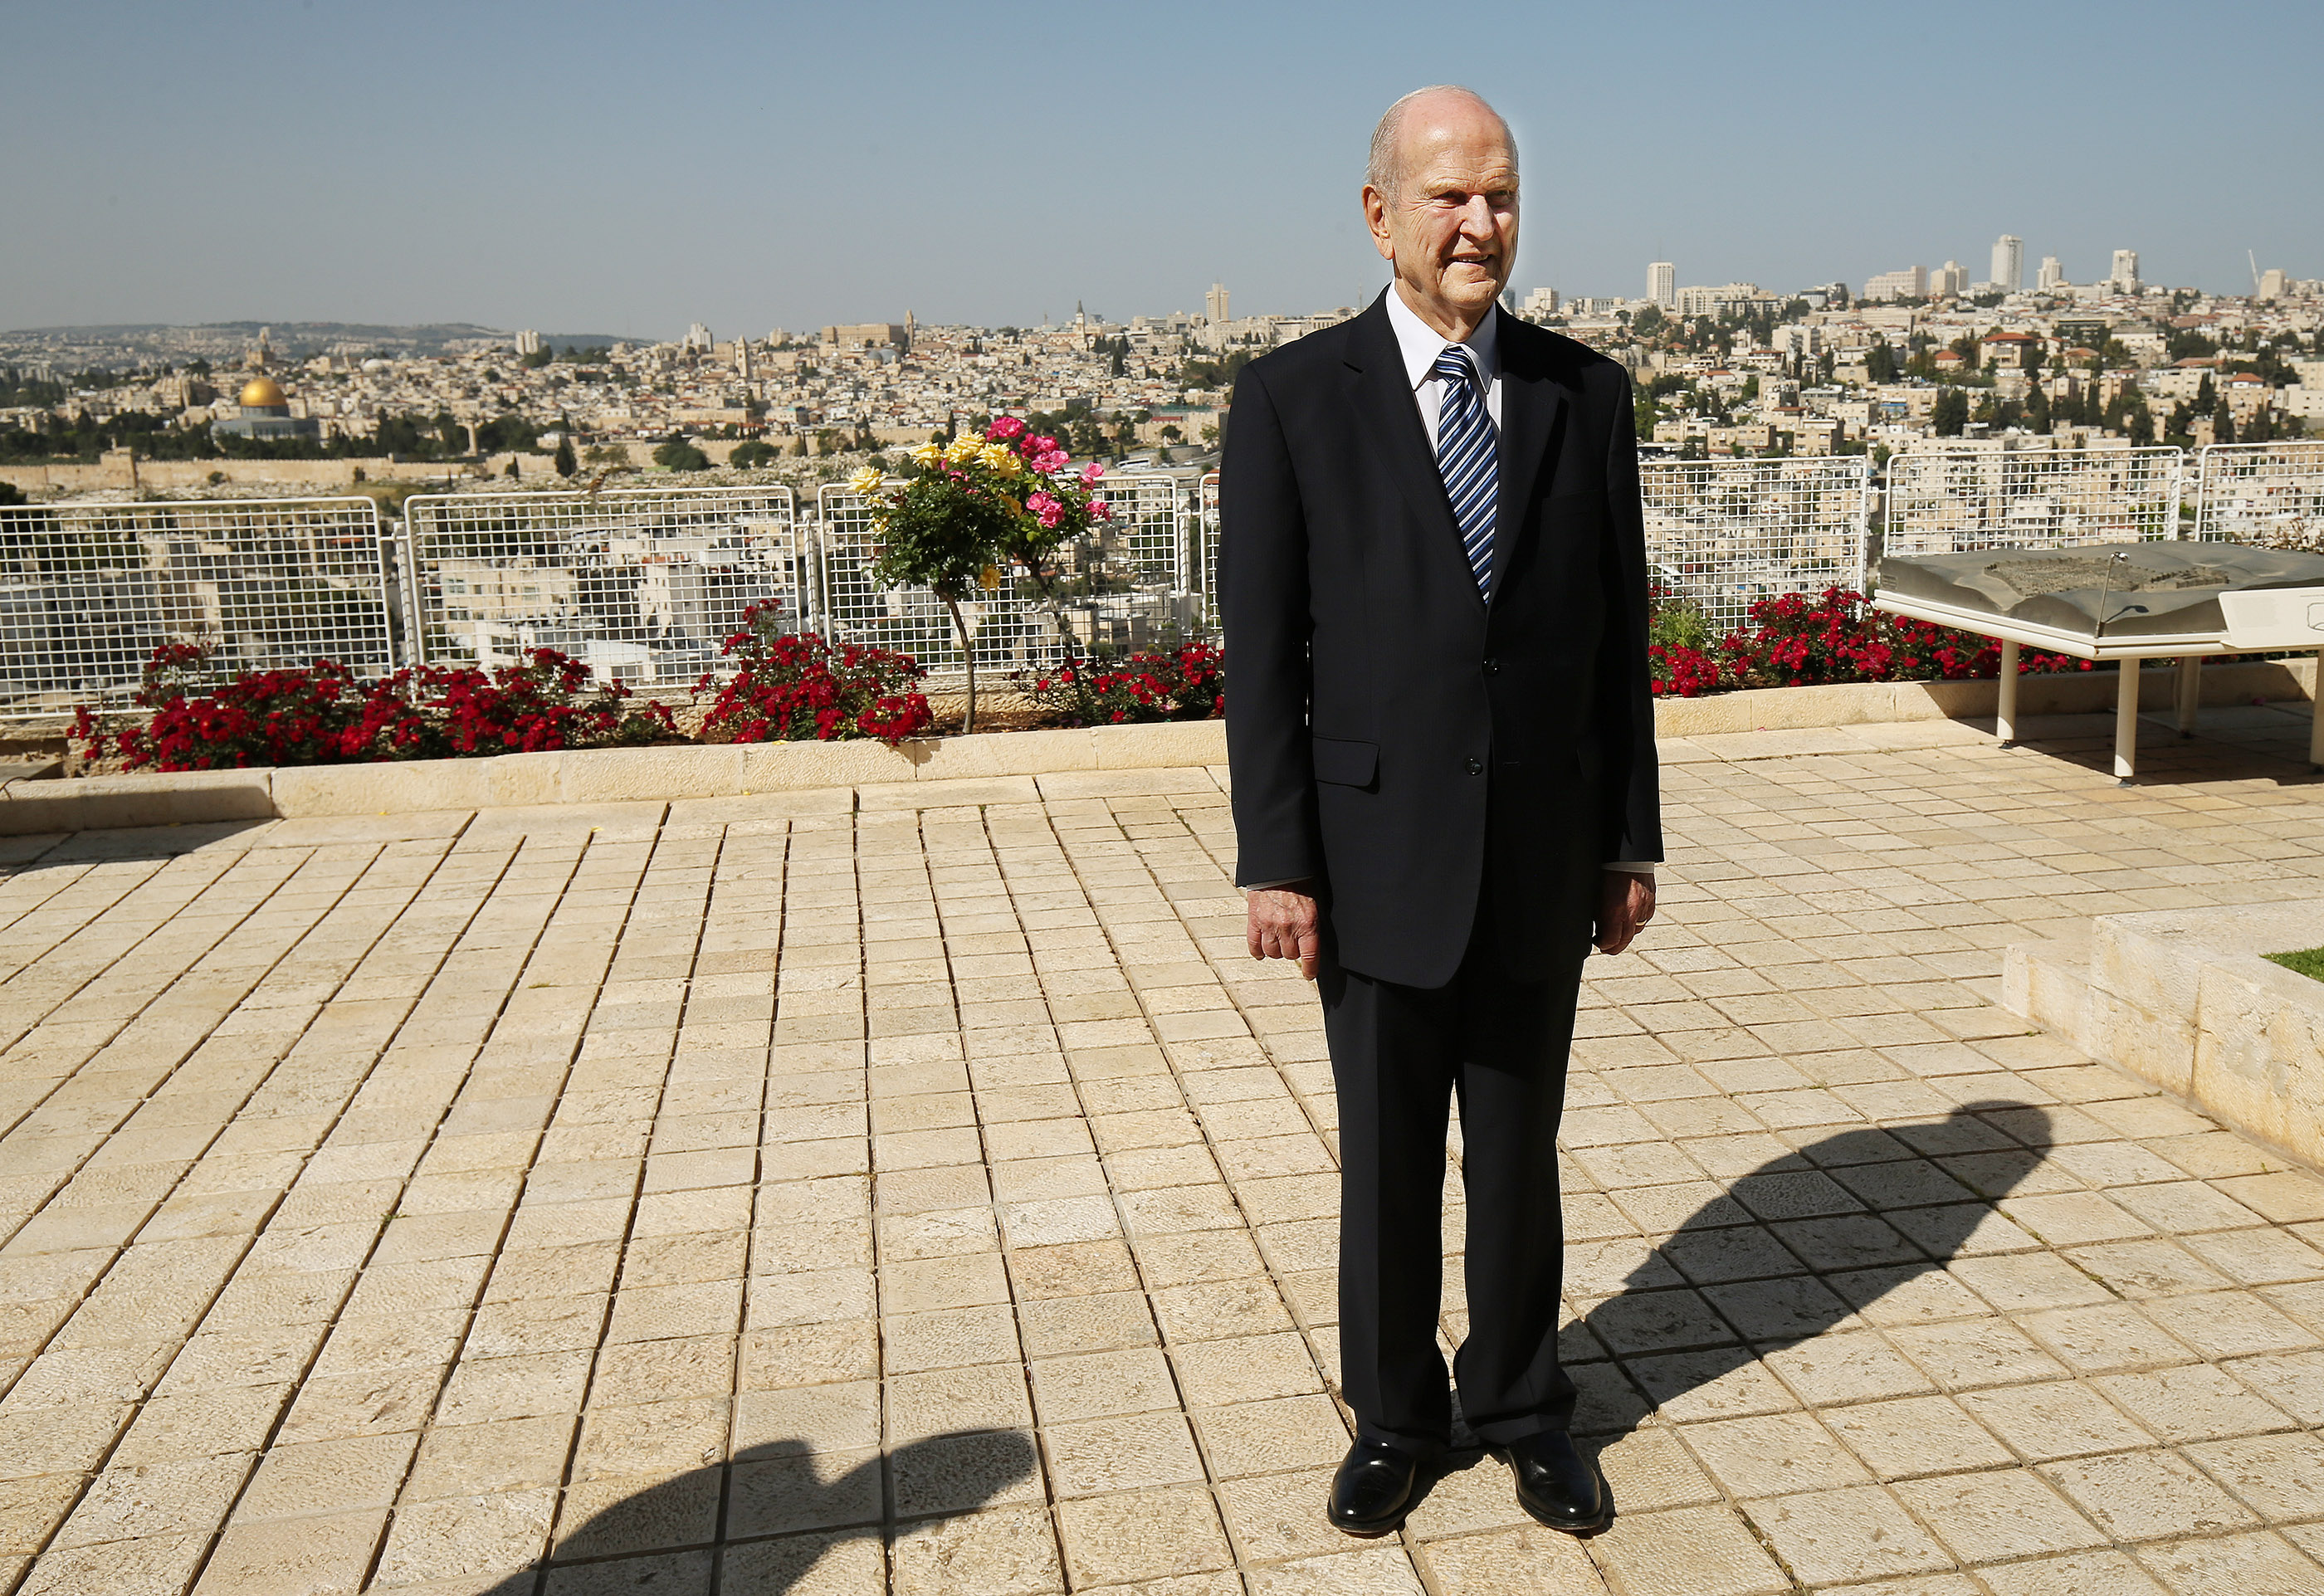 President Russell M. Nelson, president of The Church of Jesus Christ of Latter-day Saints, looks over the grounds at the BYU Jerusalem Center in Jerusalem on Saturday, April 14, 2018. He is on a global tour of eight countries.